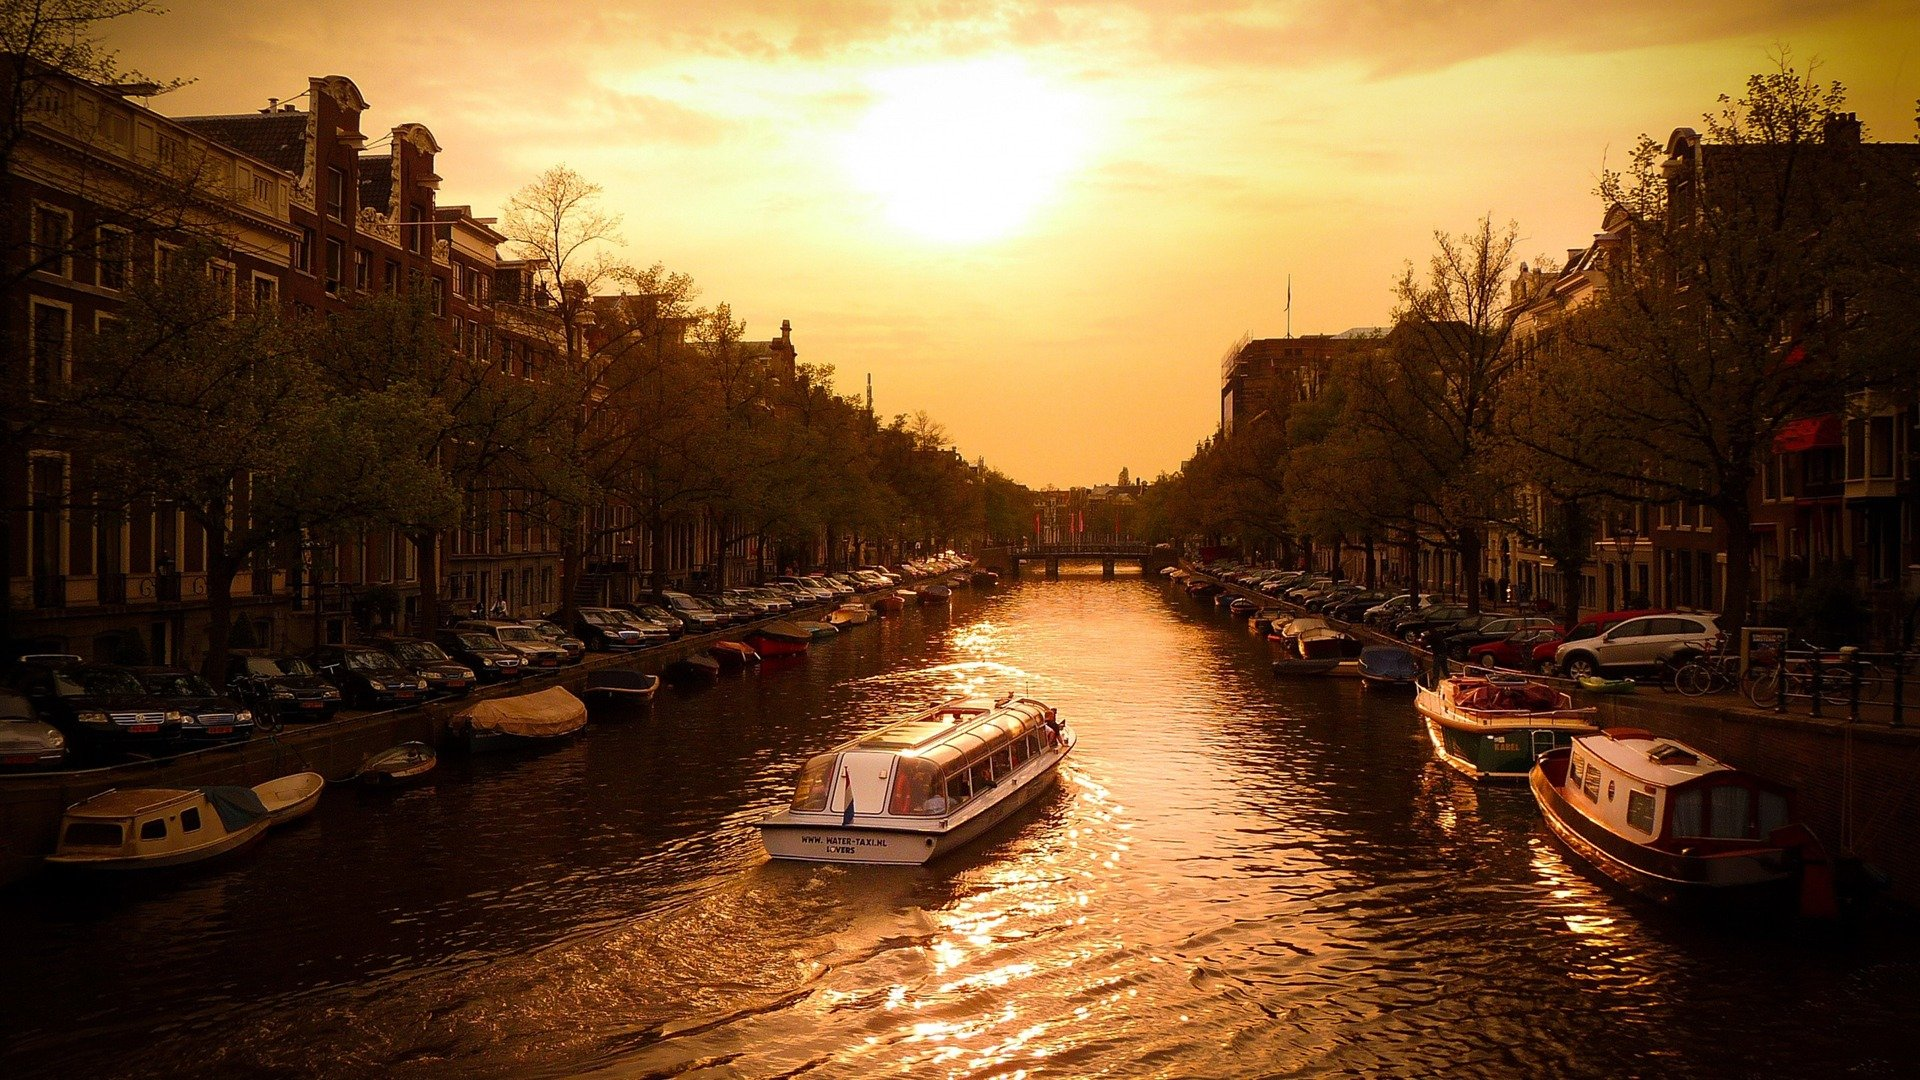 Canal Cruise Amsterdam wallpaper